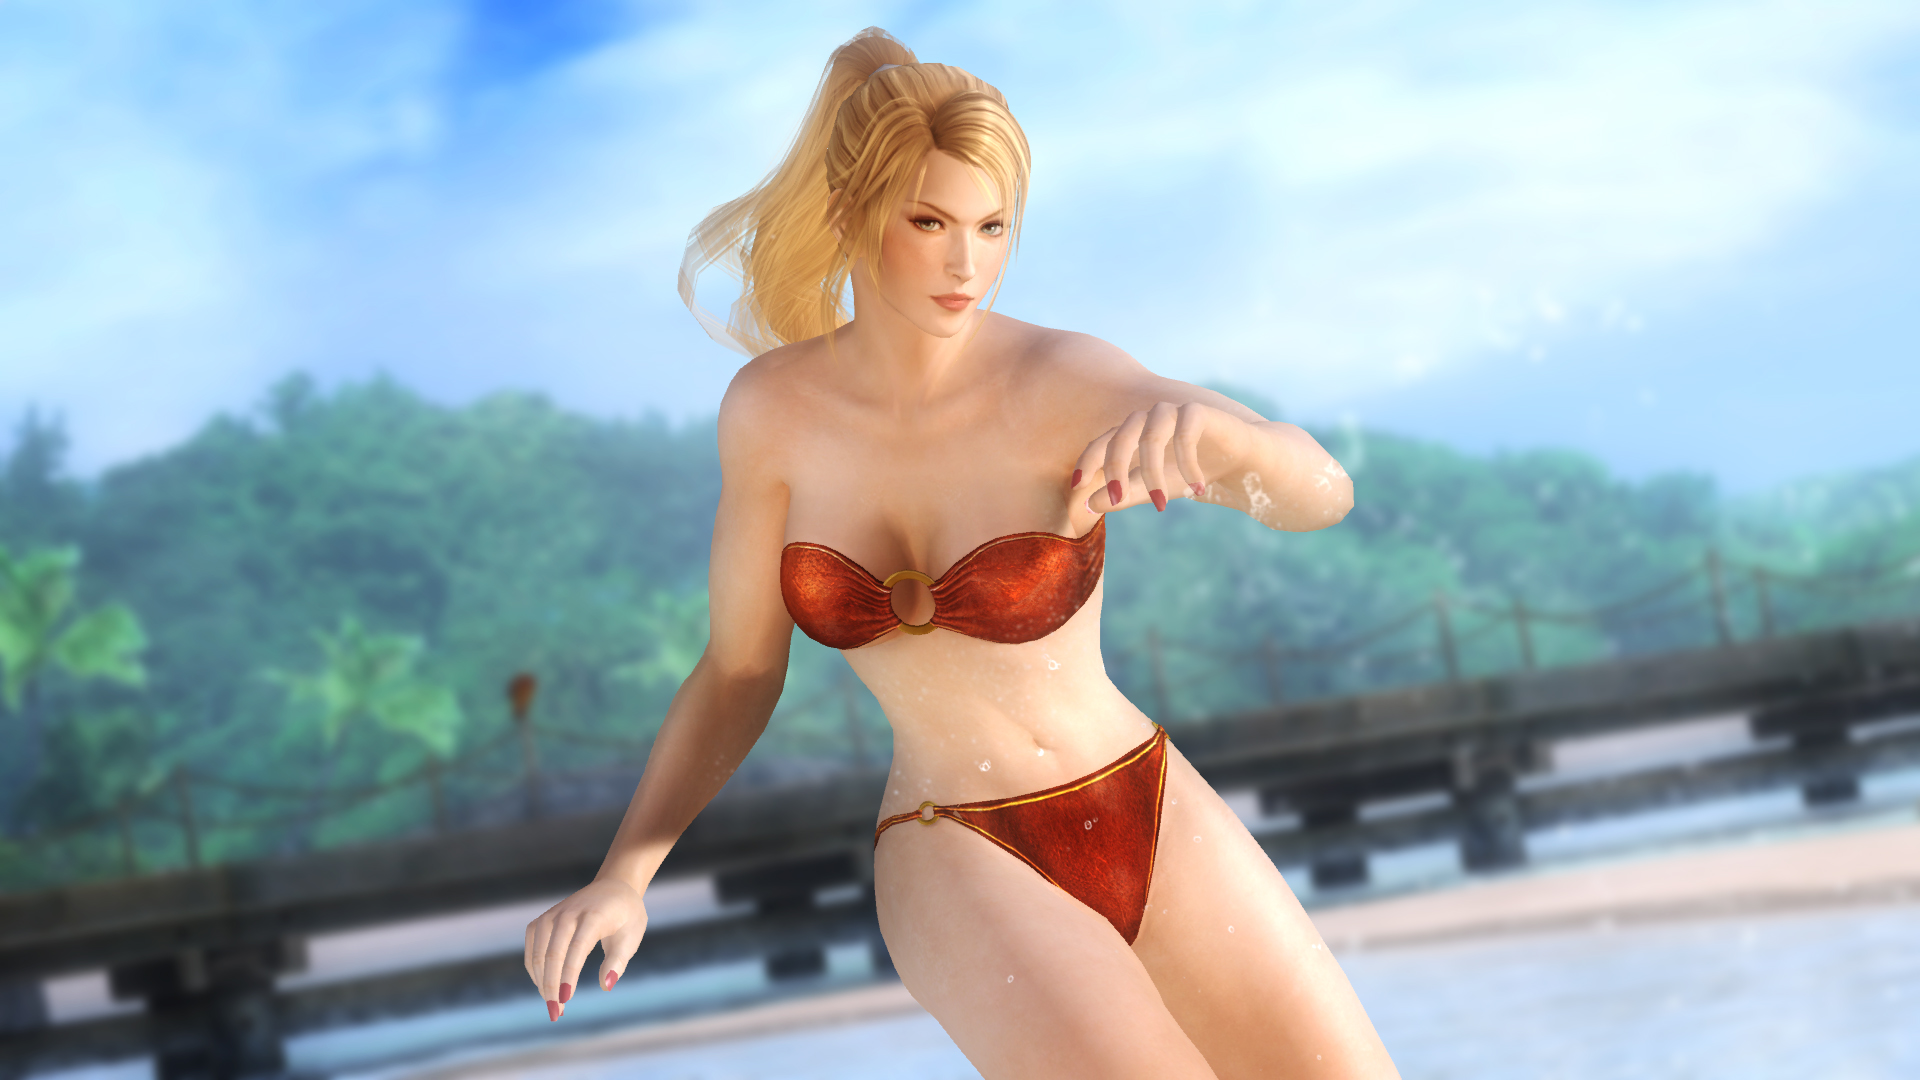 23/01/2013 - Zack Island & Swimsuit Costumes Screens - 13